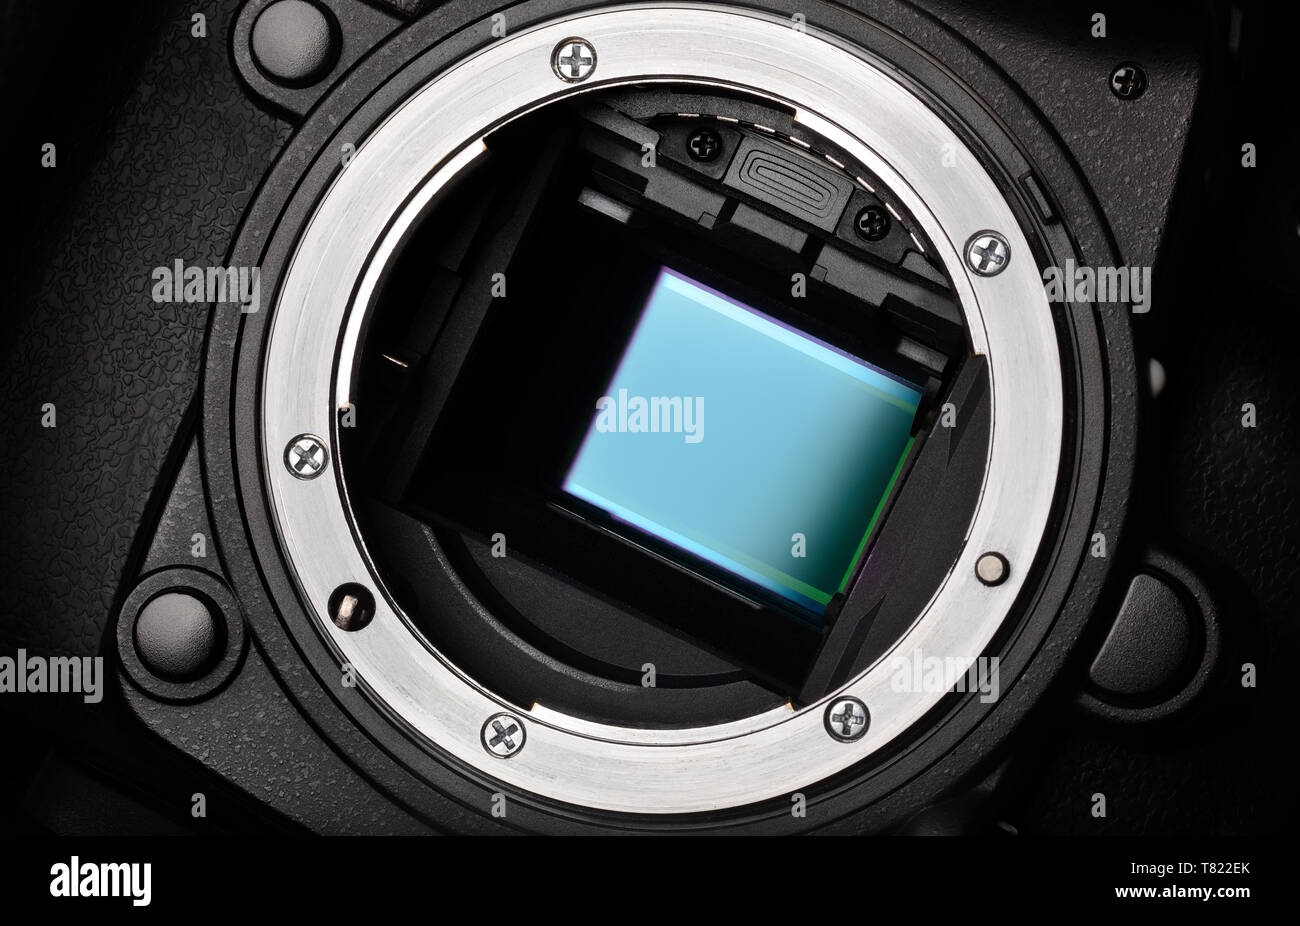 Digital camera APS-C sensor and lens mount close-up - Stock Image